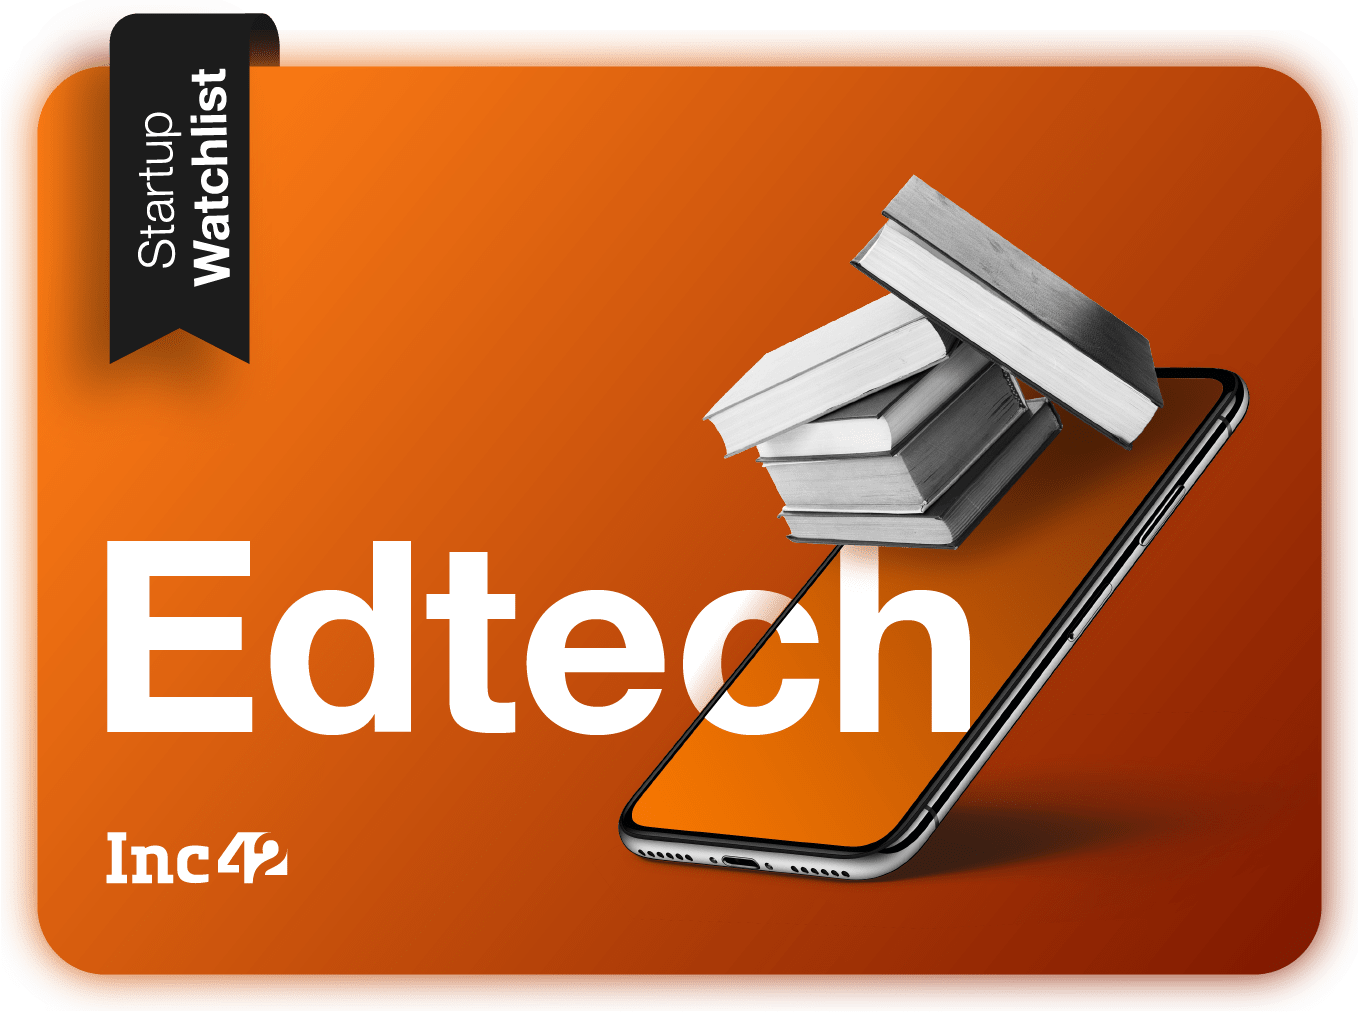 Startup Watchlist: Top Indian Edtech Startups To Look Out For In 2019